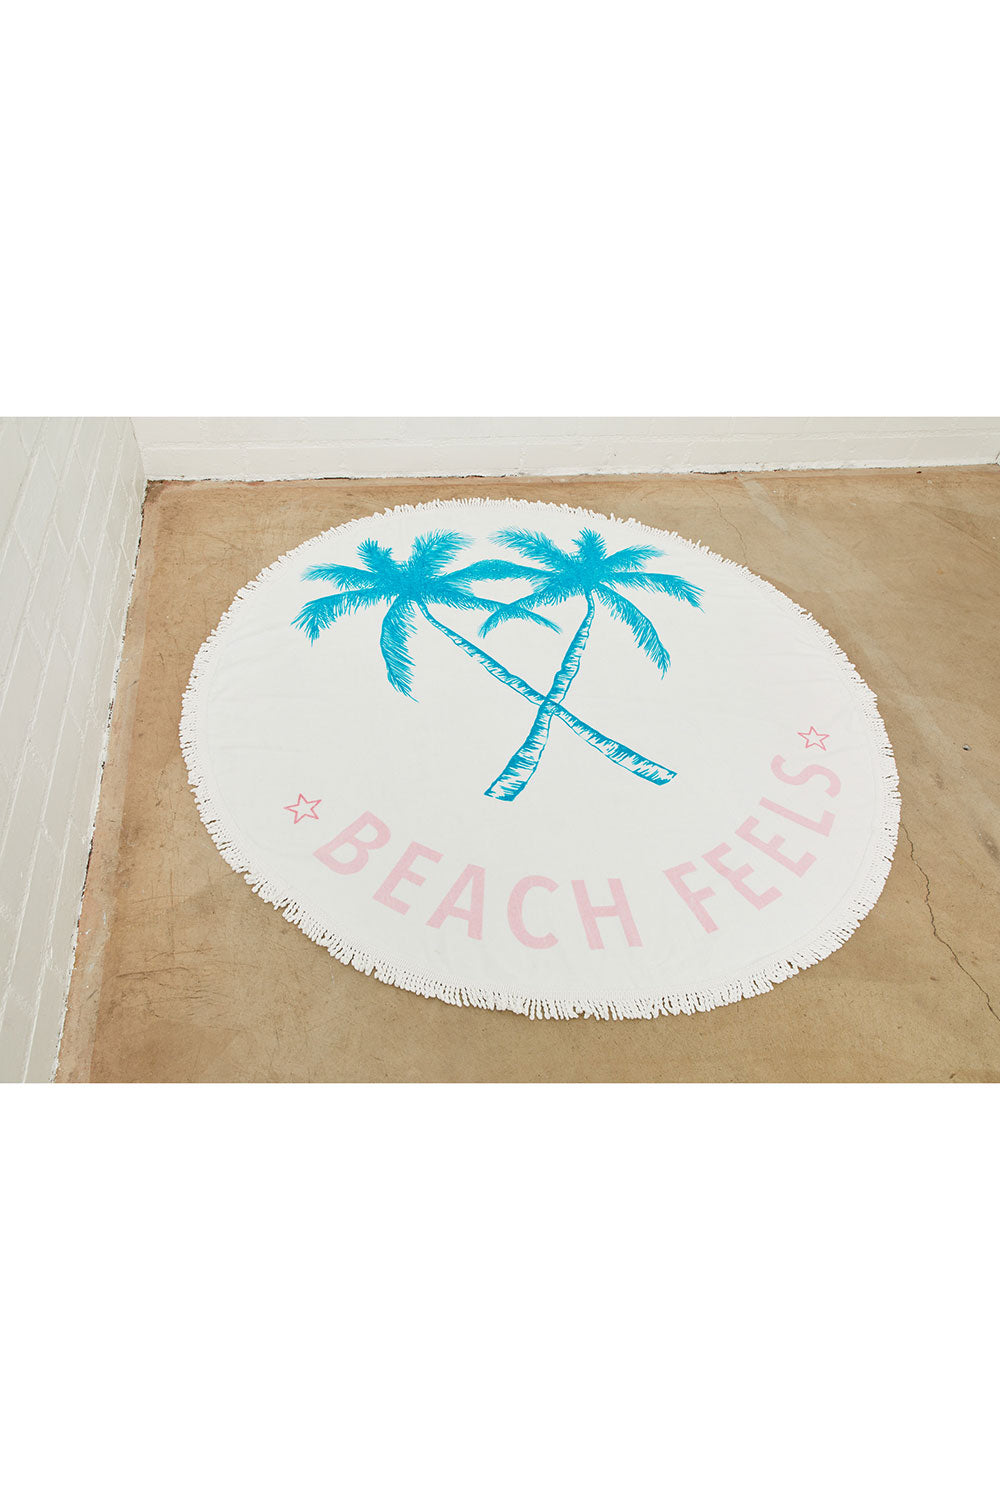 Beach Feels WOMENS chaserbrand4.myshopify.com